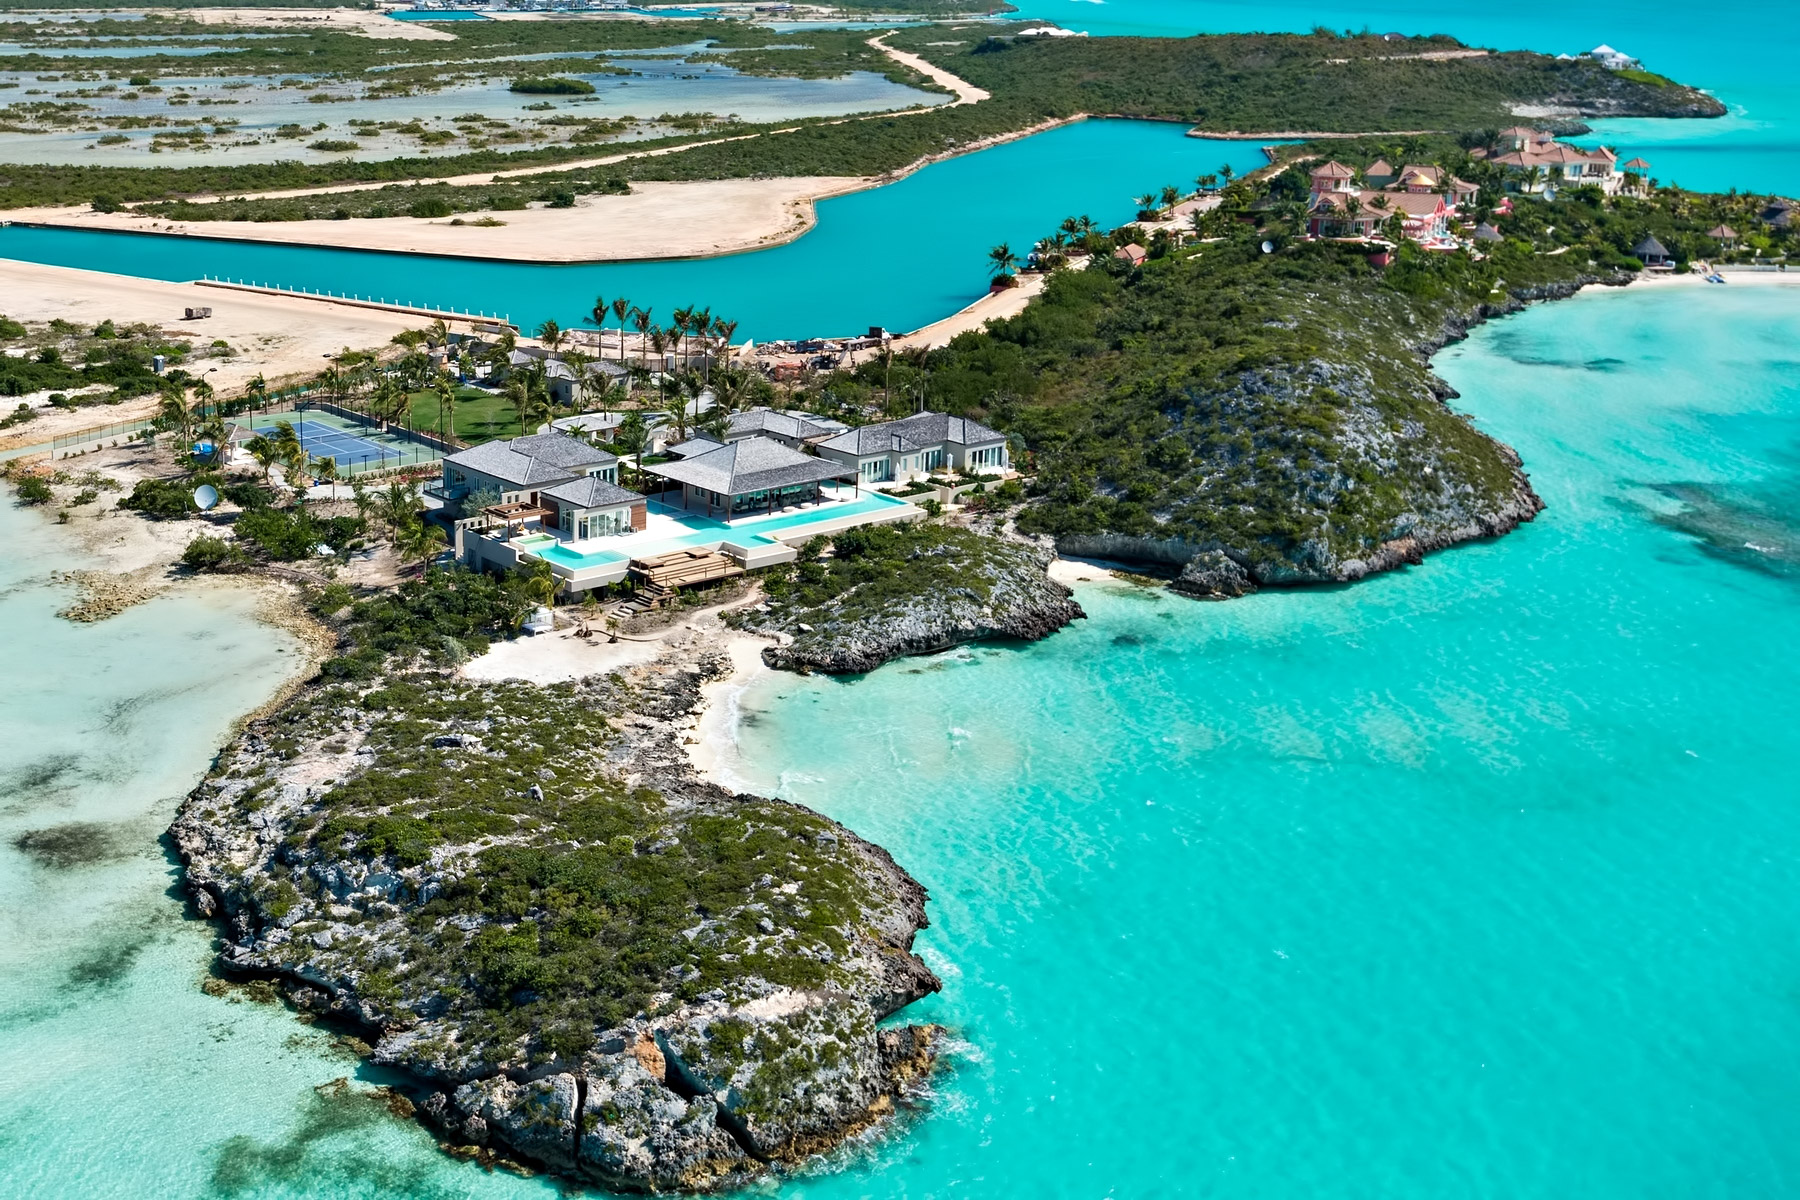 Turtle Tail Luxury Estate Villa - Providenciales, Turks and Caicos Islands